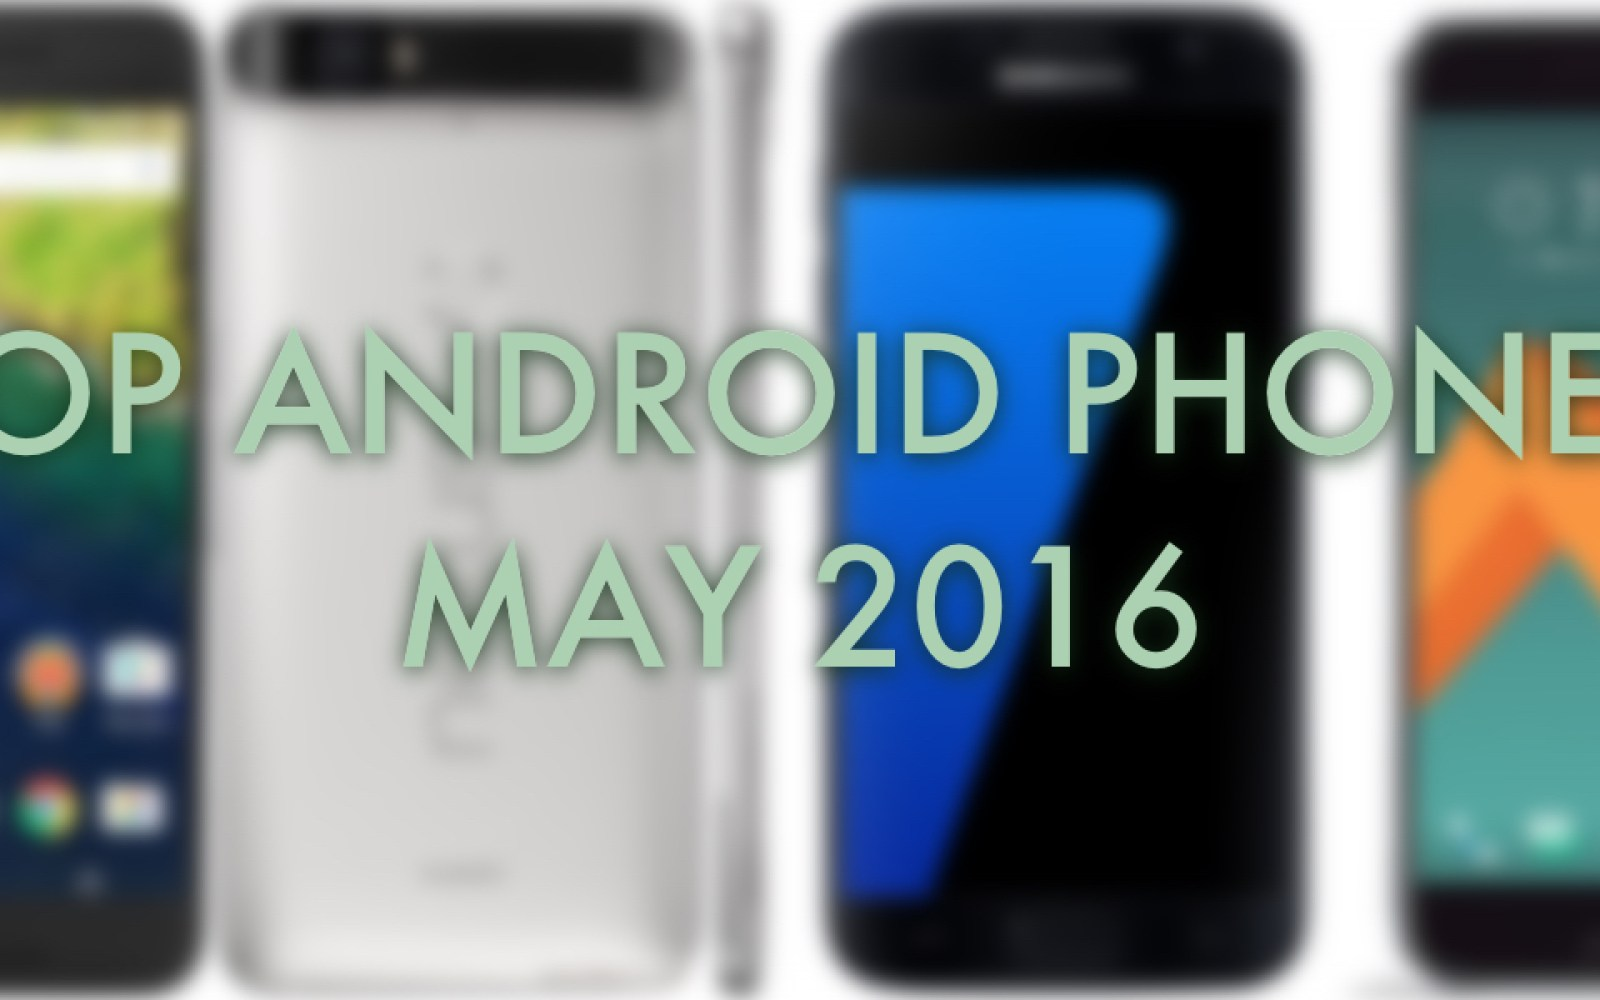 The best Android phones you can buy [May 2016]